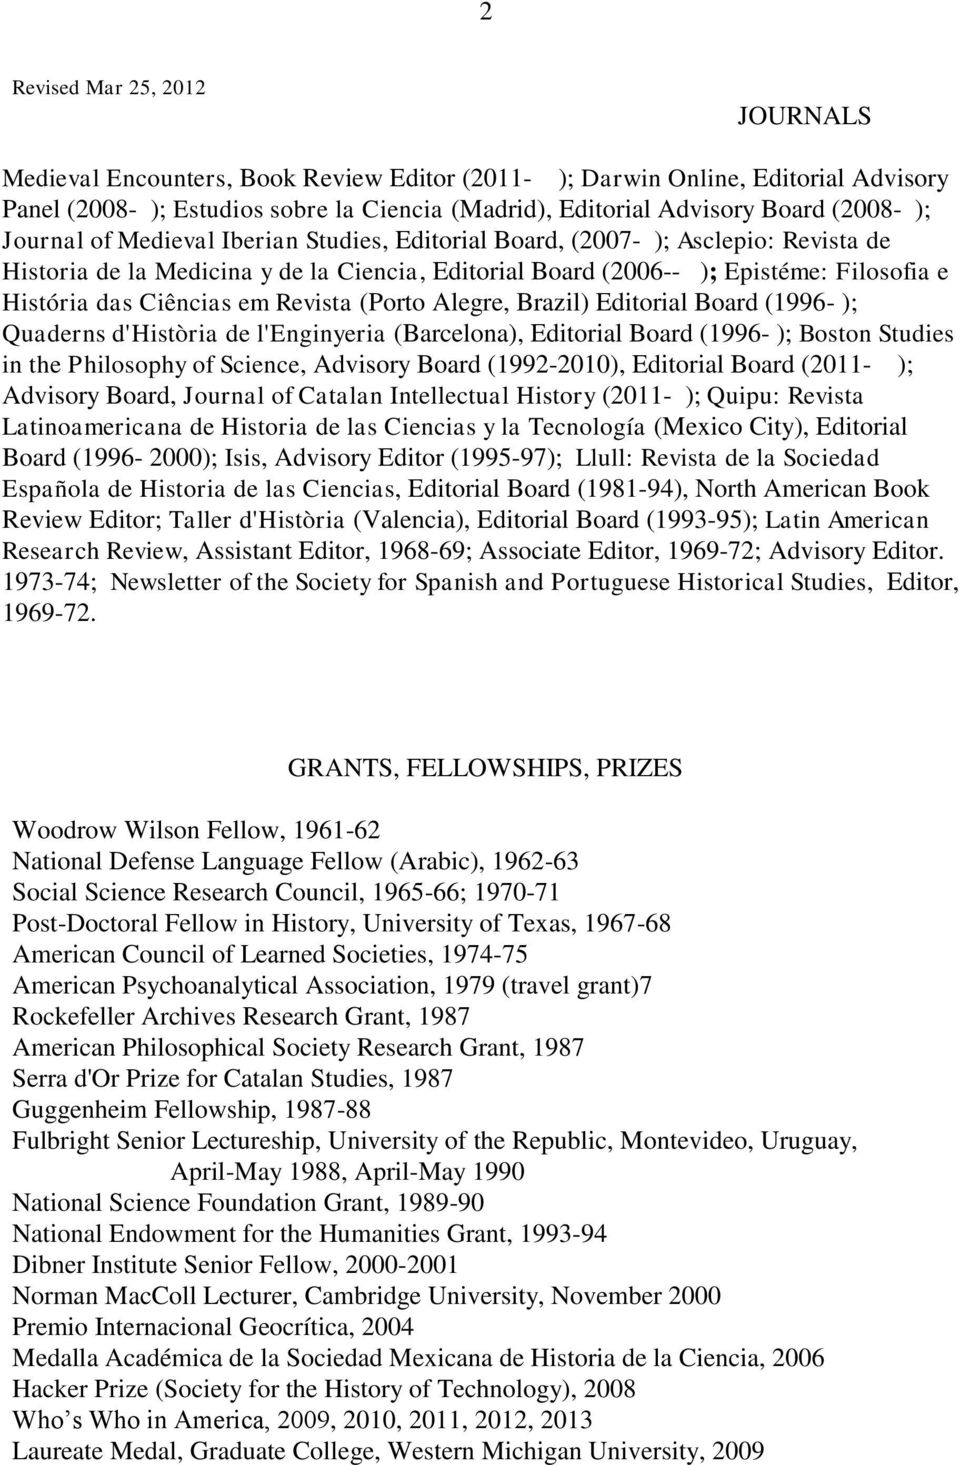 em Revista (Porto Alegre, Brazil) Editorial Board (1996- ); Quaderns d'història de l'enginyeria (Barcelona), Editorial Board (1996- ); Boston Studies in the Philosophy of Science, Advisory Board